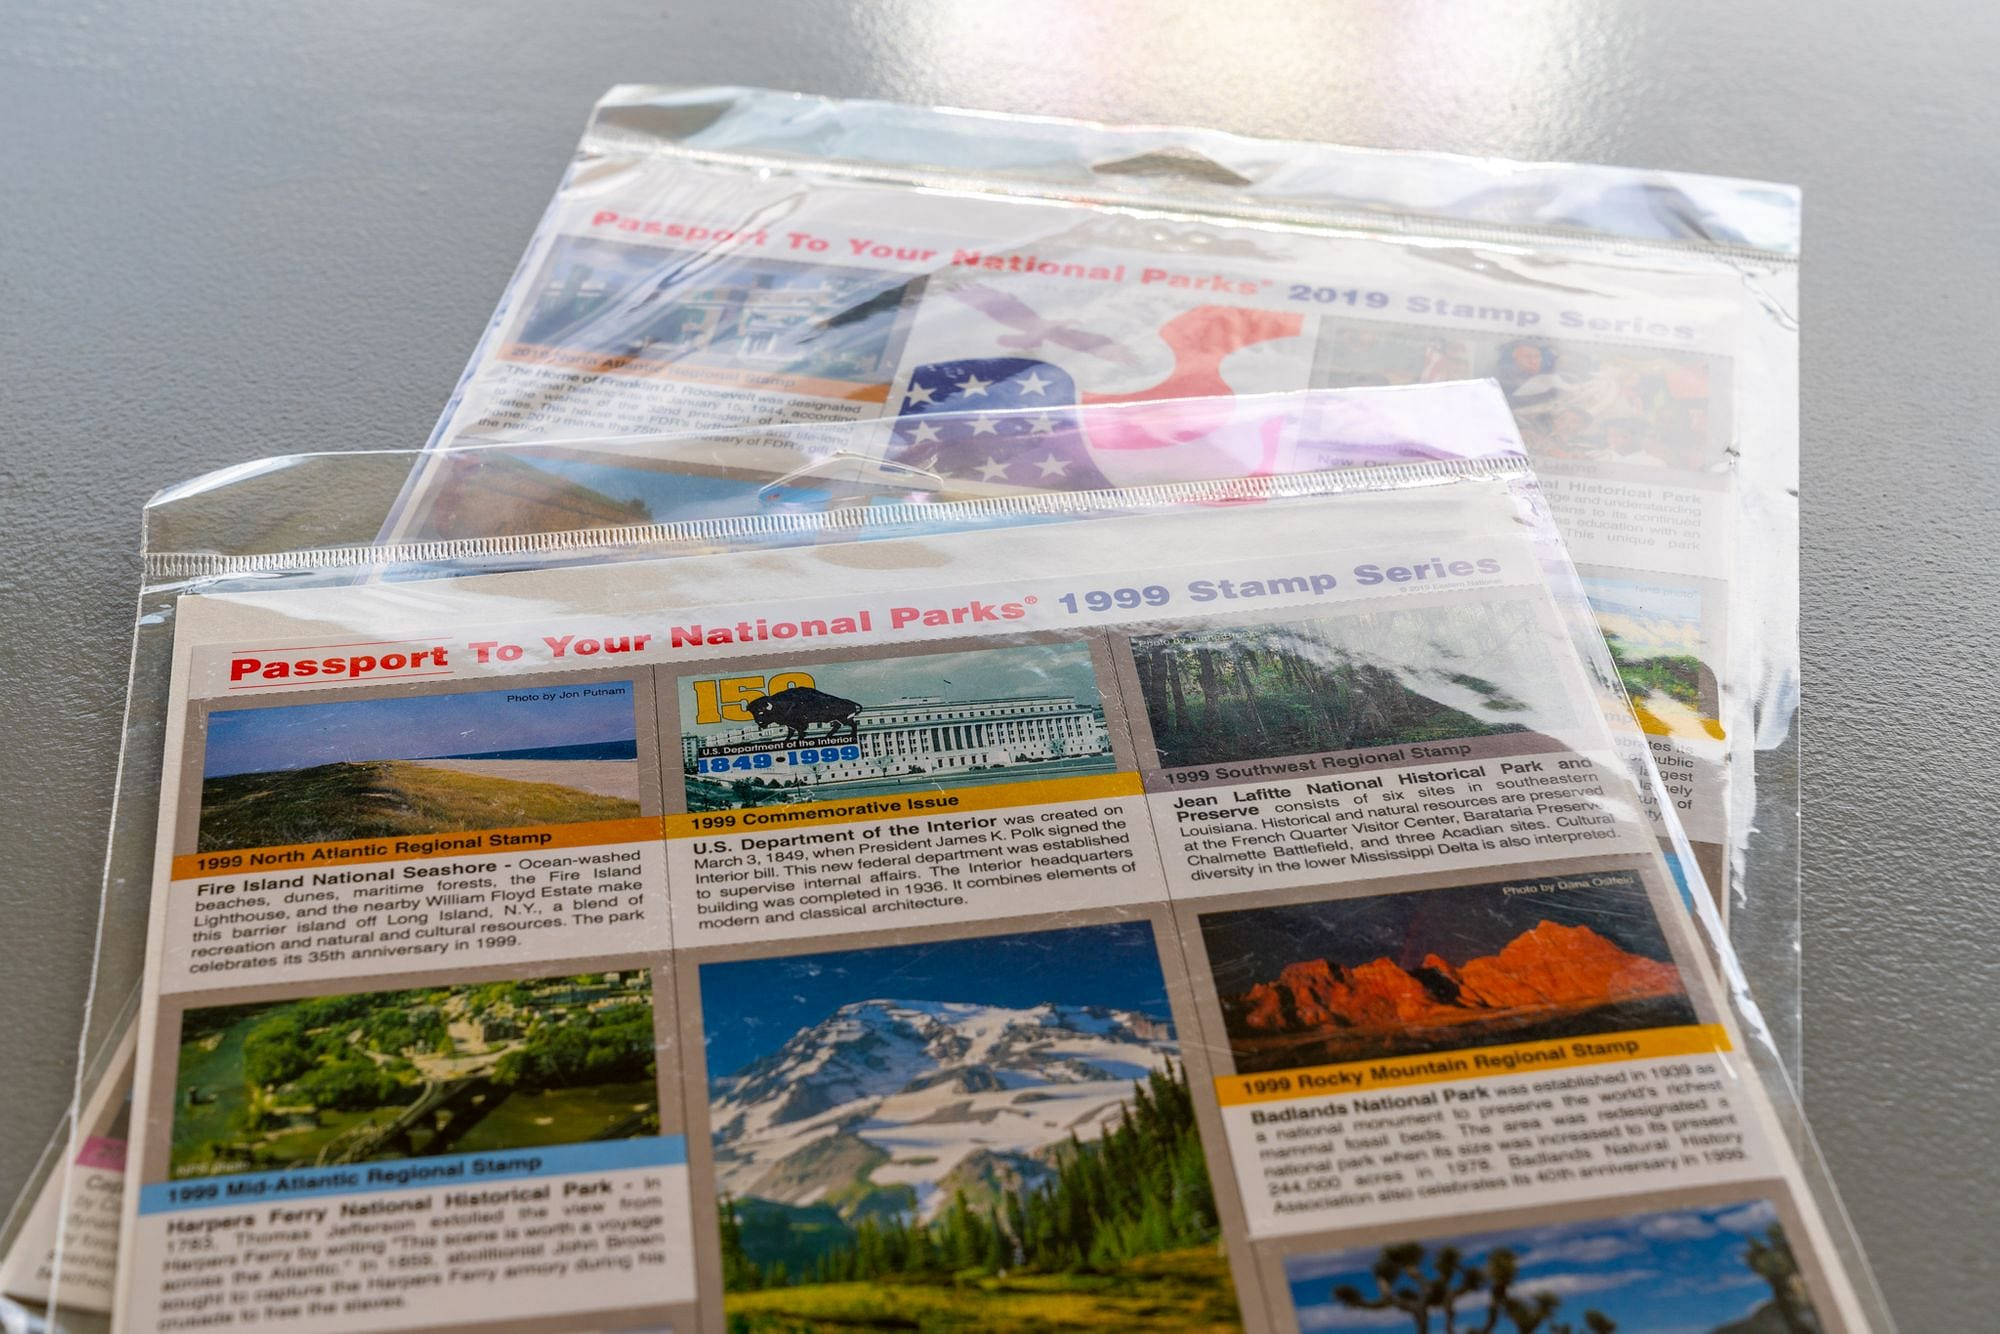 Passport to Your National Parks Stamp Series